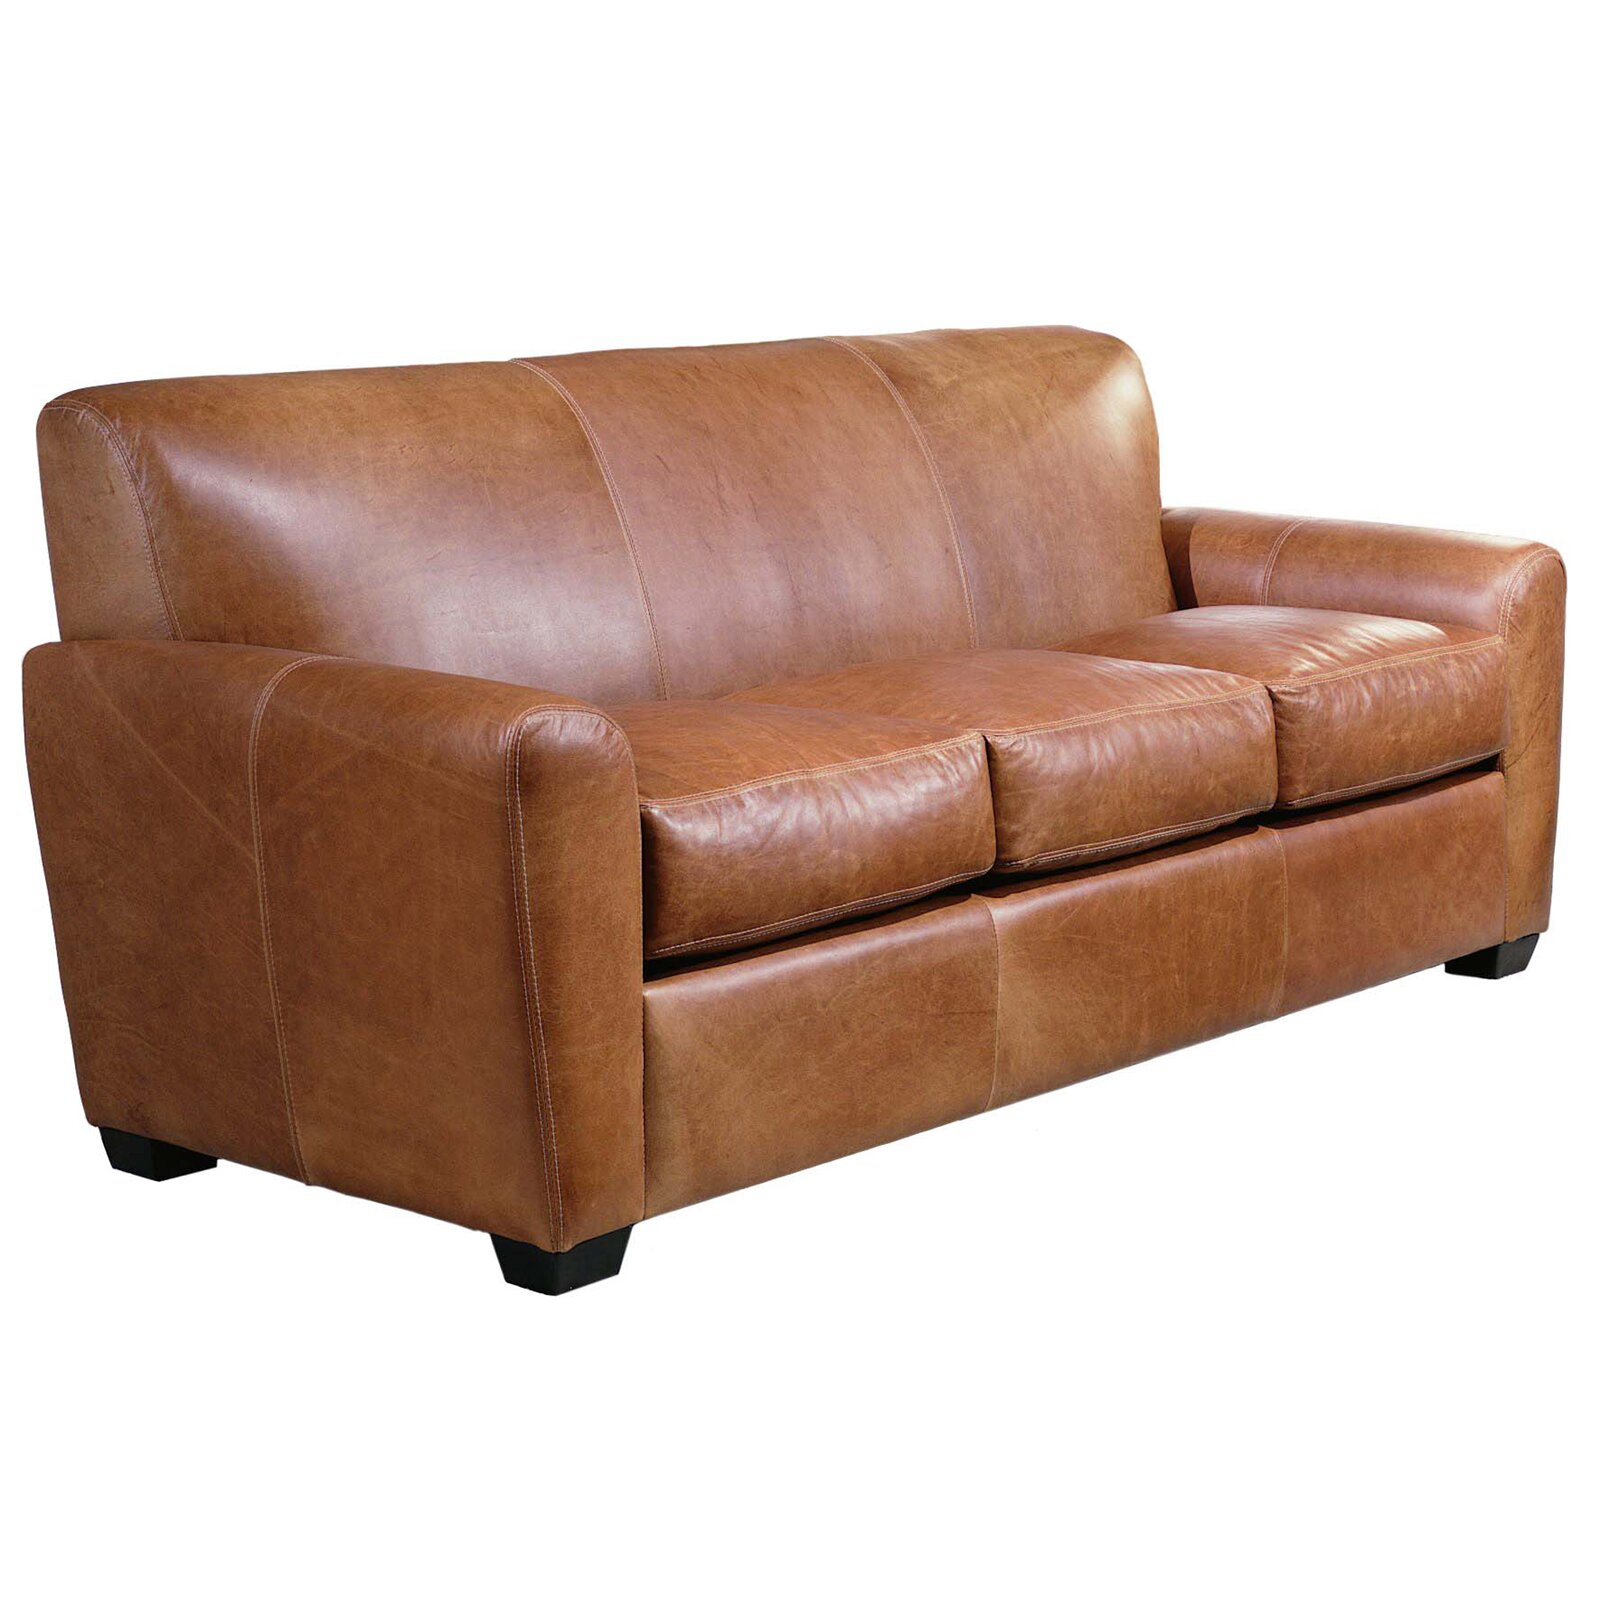 Omnia Leather Jackson Leather Sleeper Sofa